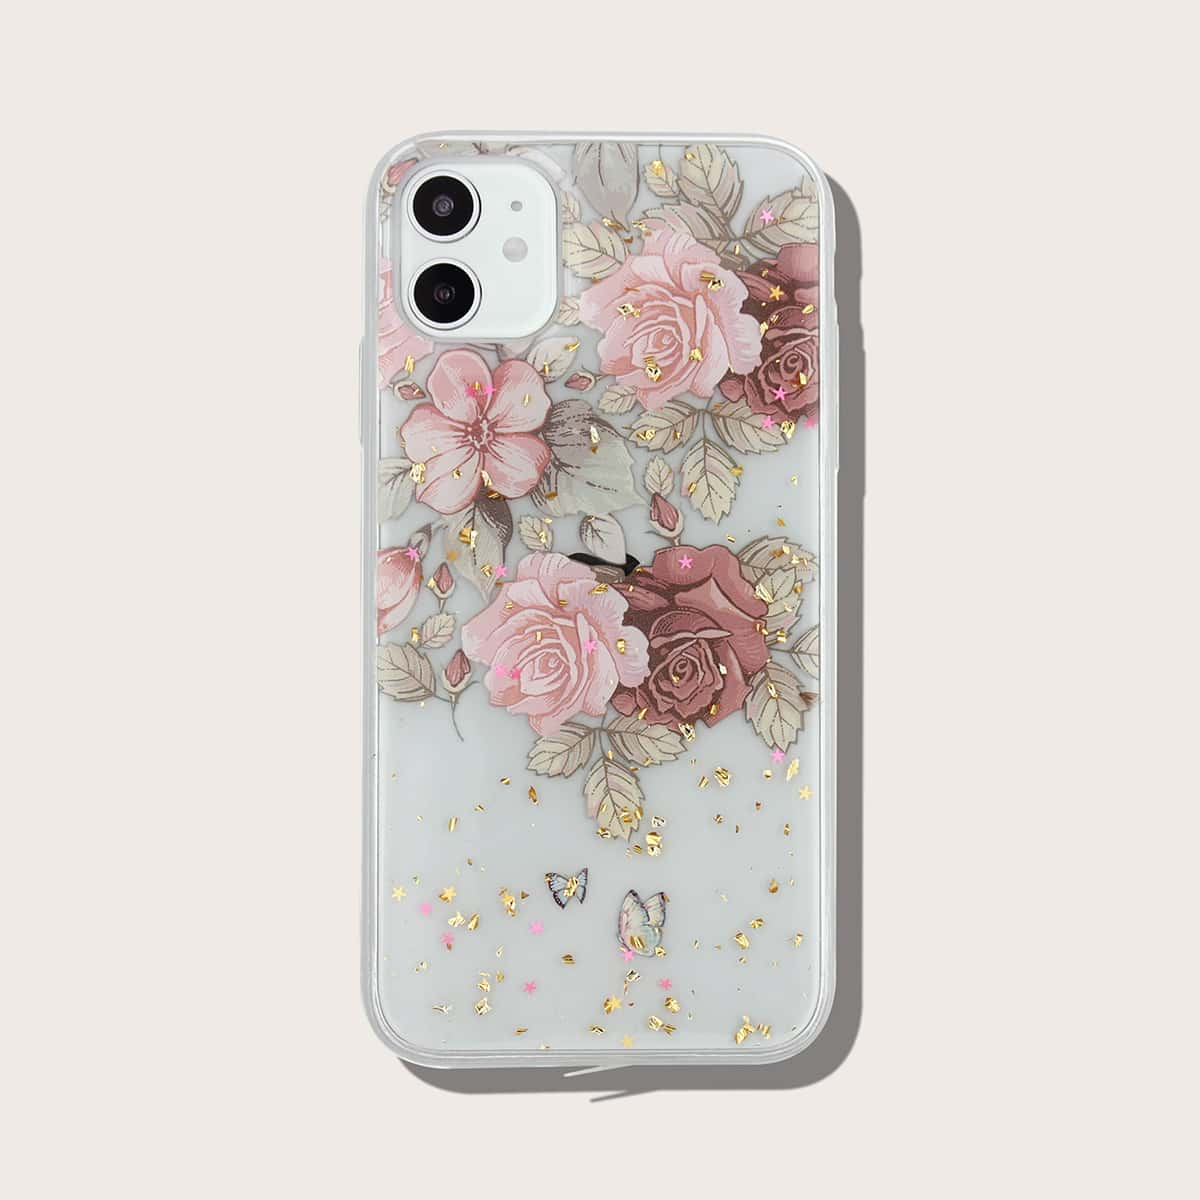 Gold Foil Decor Flower Print Clear iPhone Case, SHEIN  - buy with discount